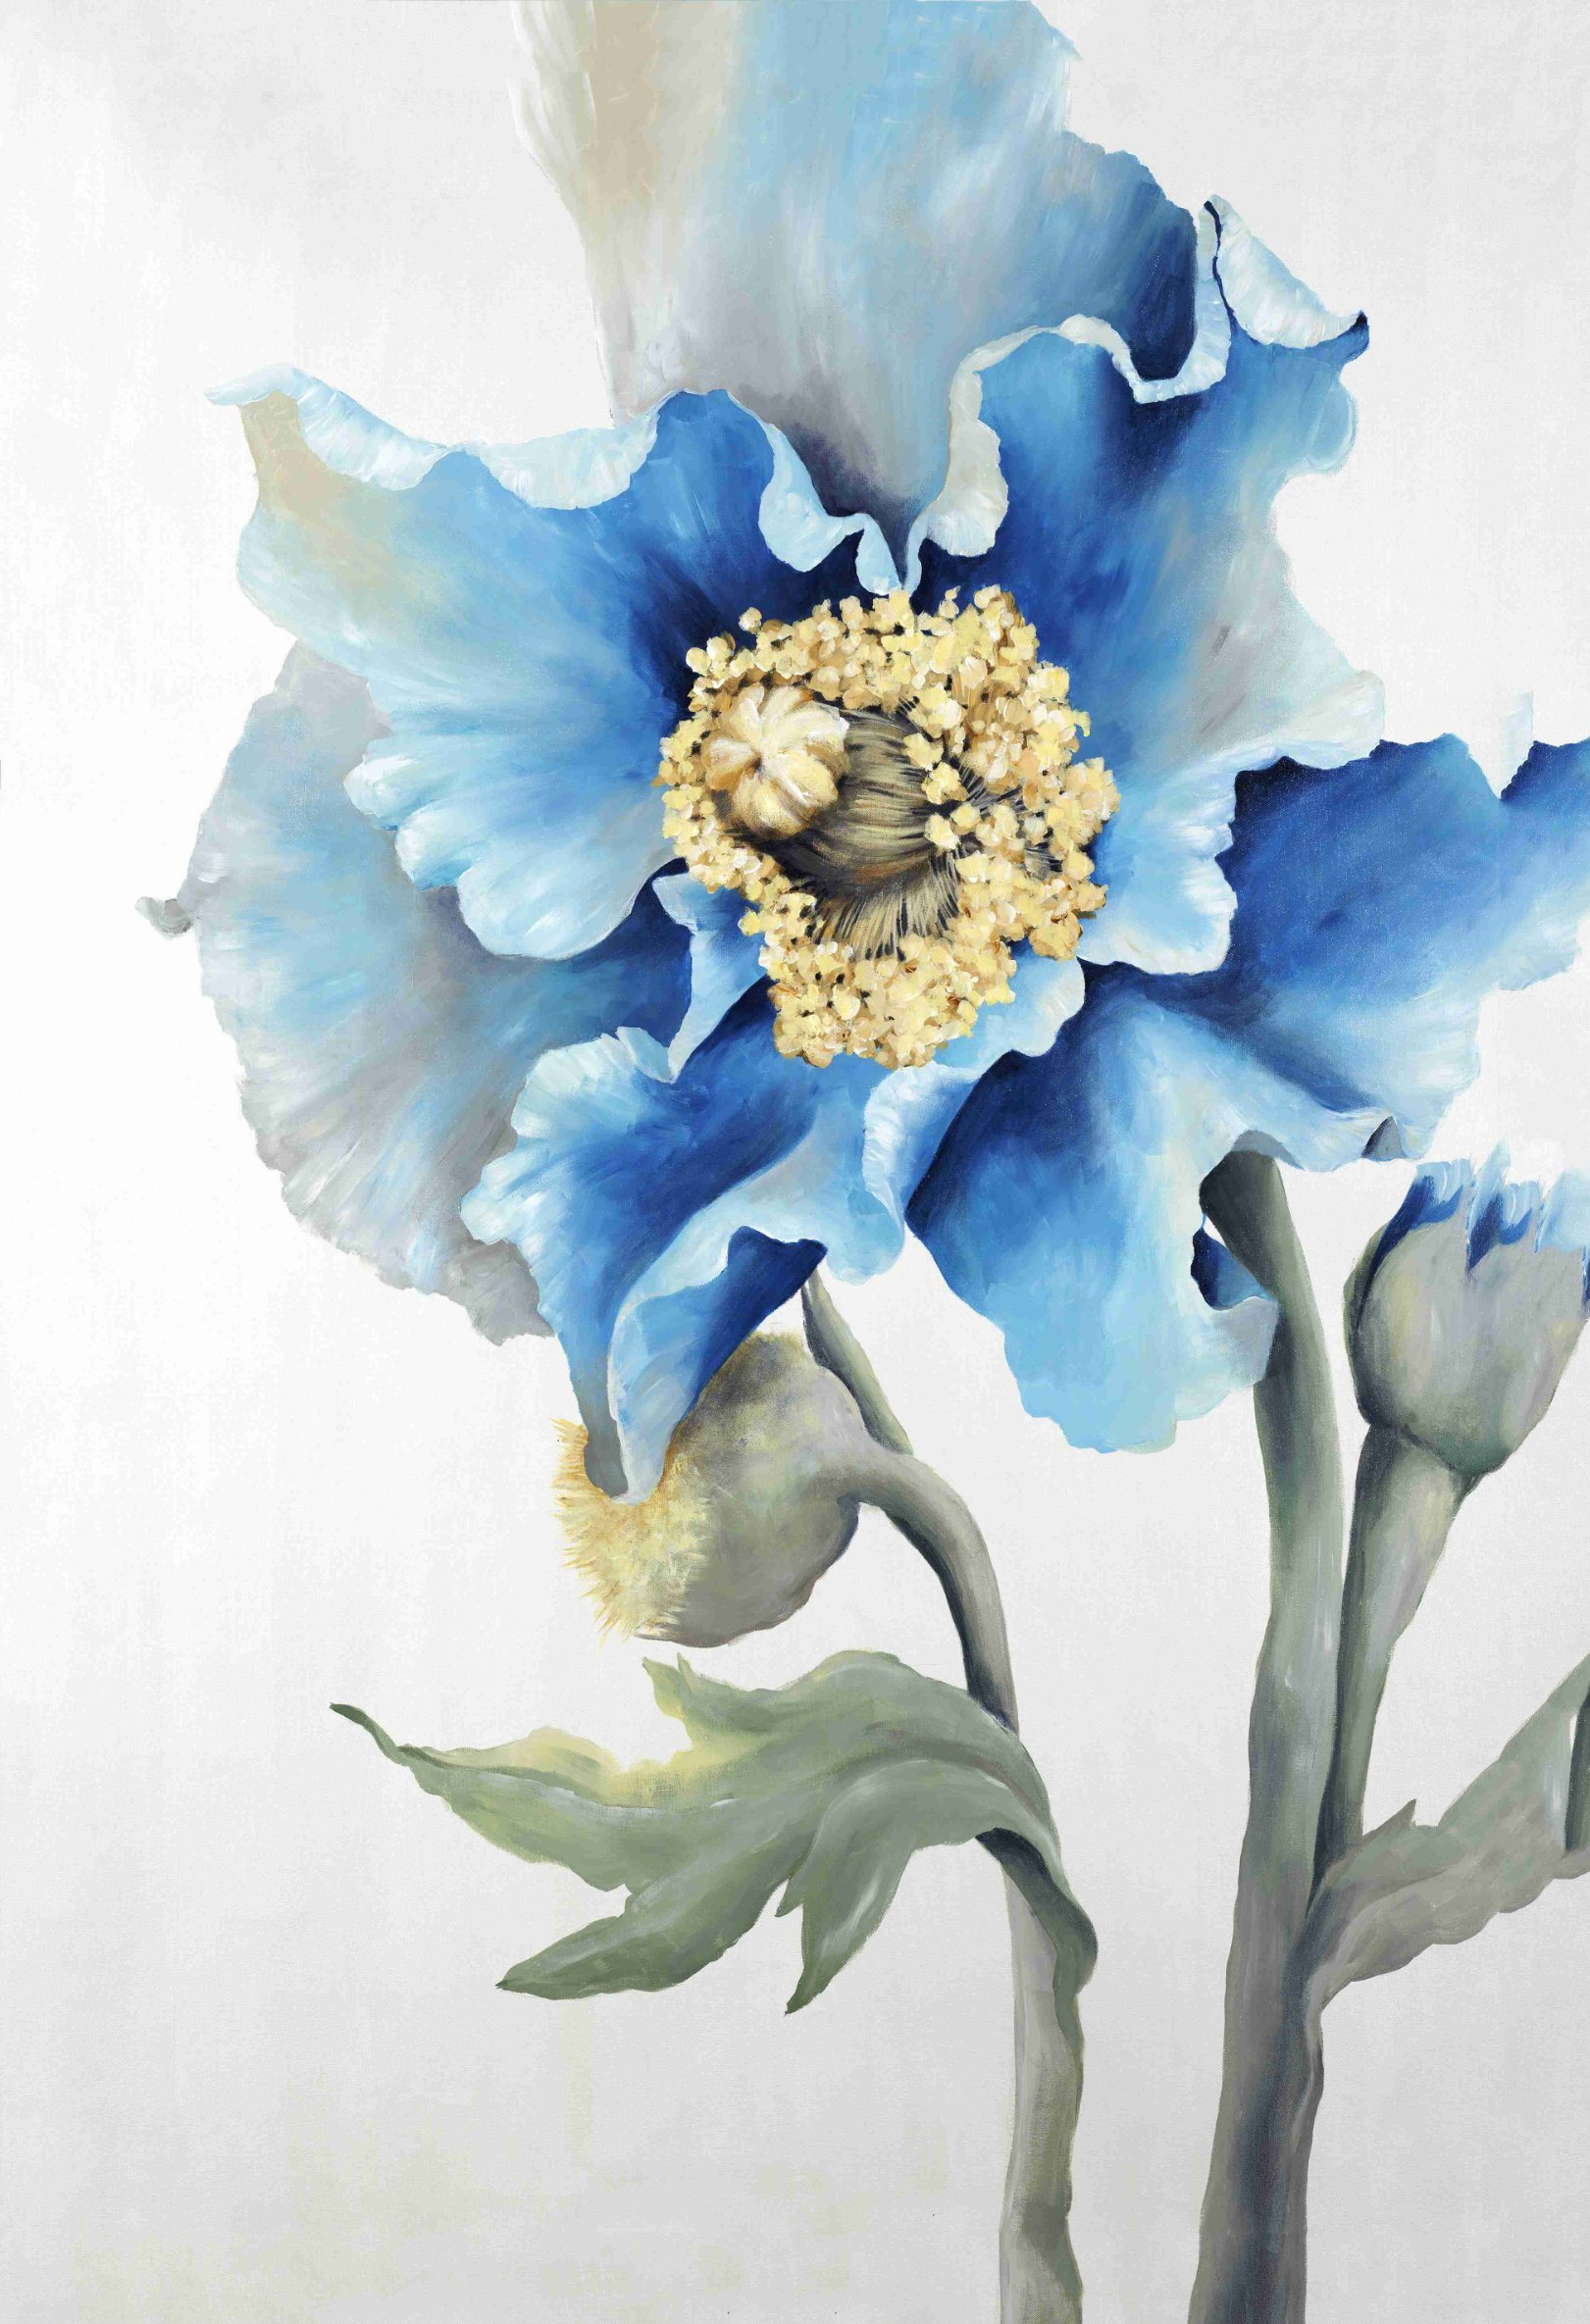 China Blue Flowers Hand Embellishment Oil Painting On Canvas Wall Art Wall Pictures Painting For Living Room Home Decor Ol 200645 Size 24x36 Inch China Oil Painting And Art Painting Price